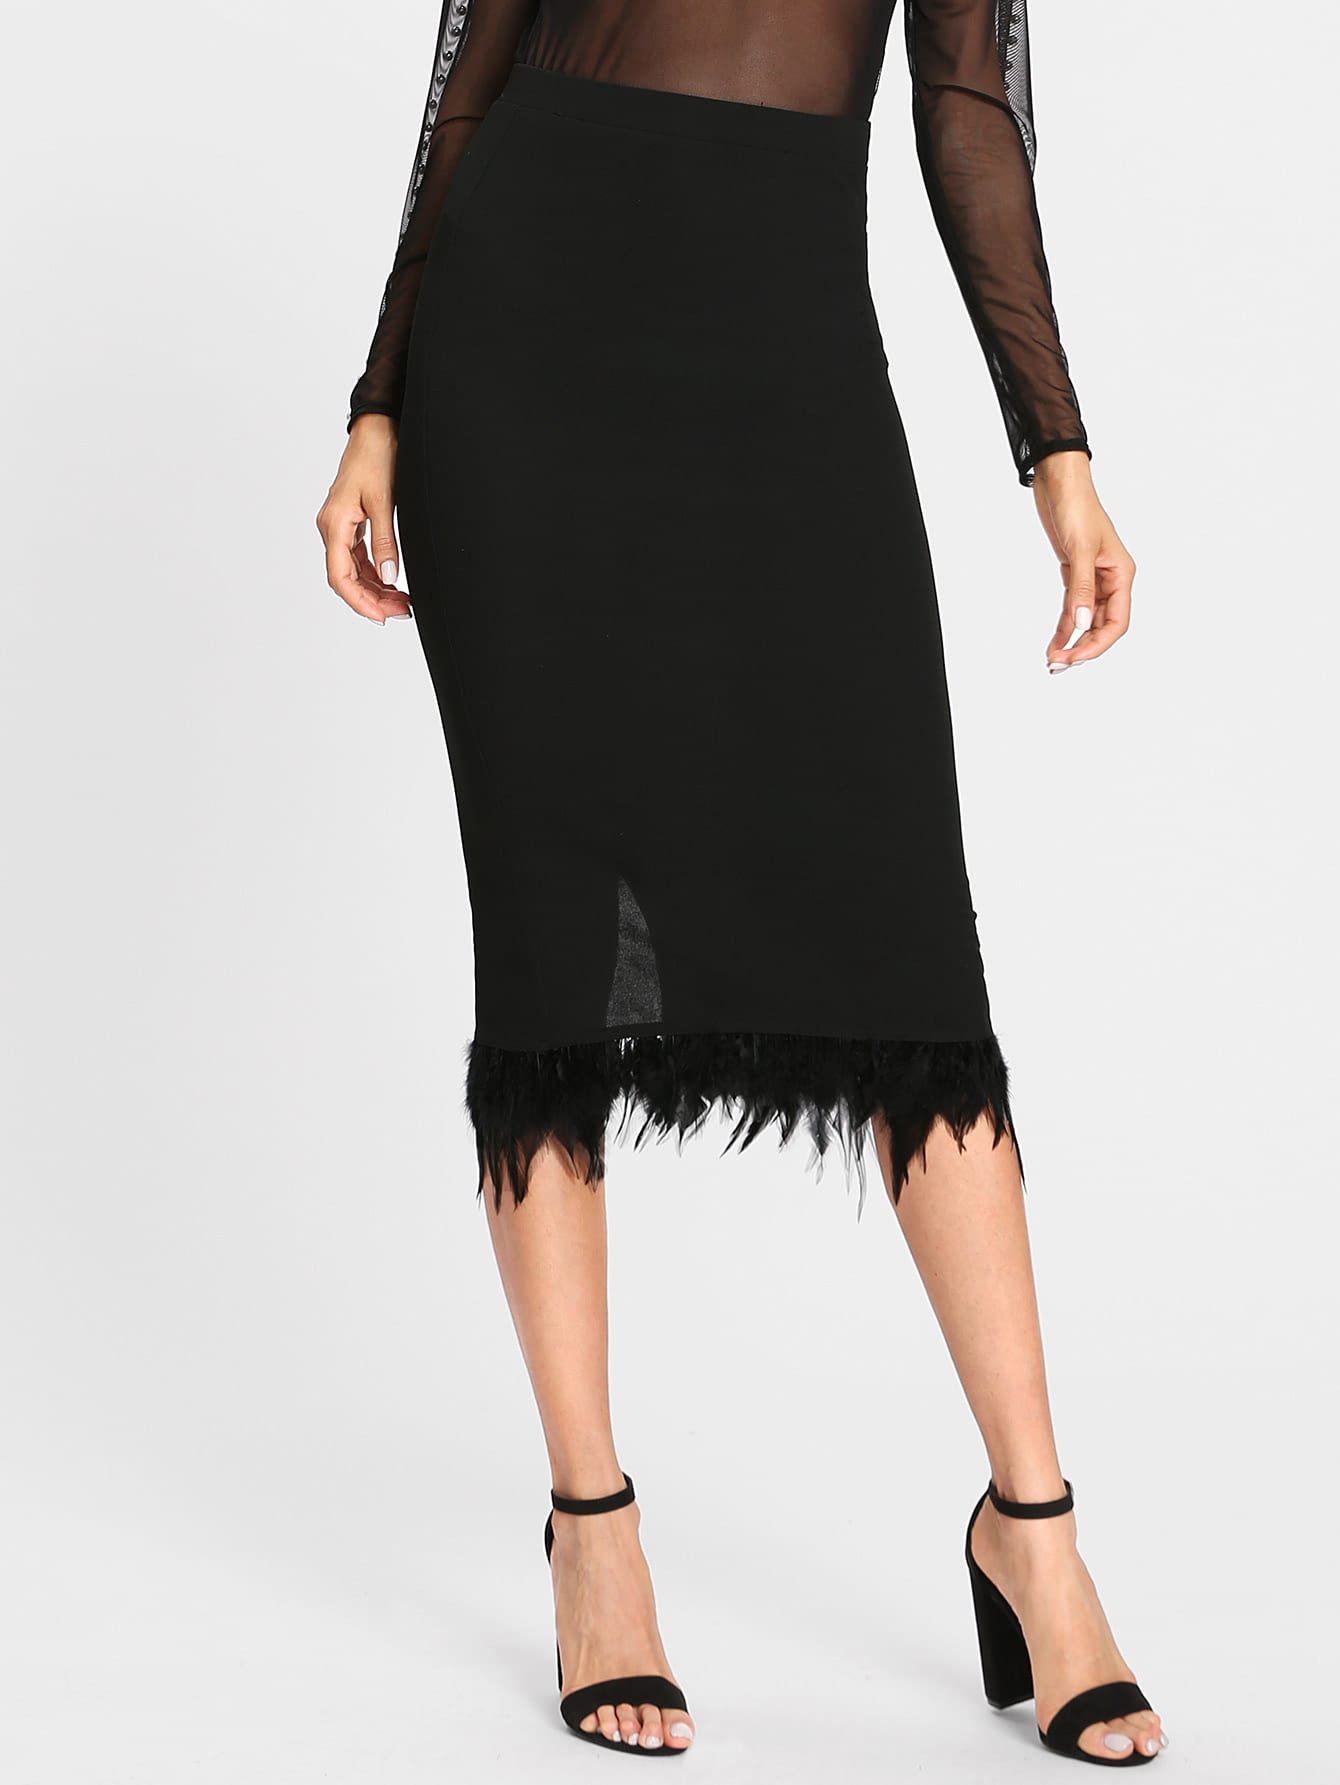 Slit Back Contrast Feather Pencil Skirt